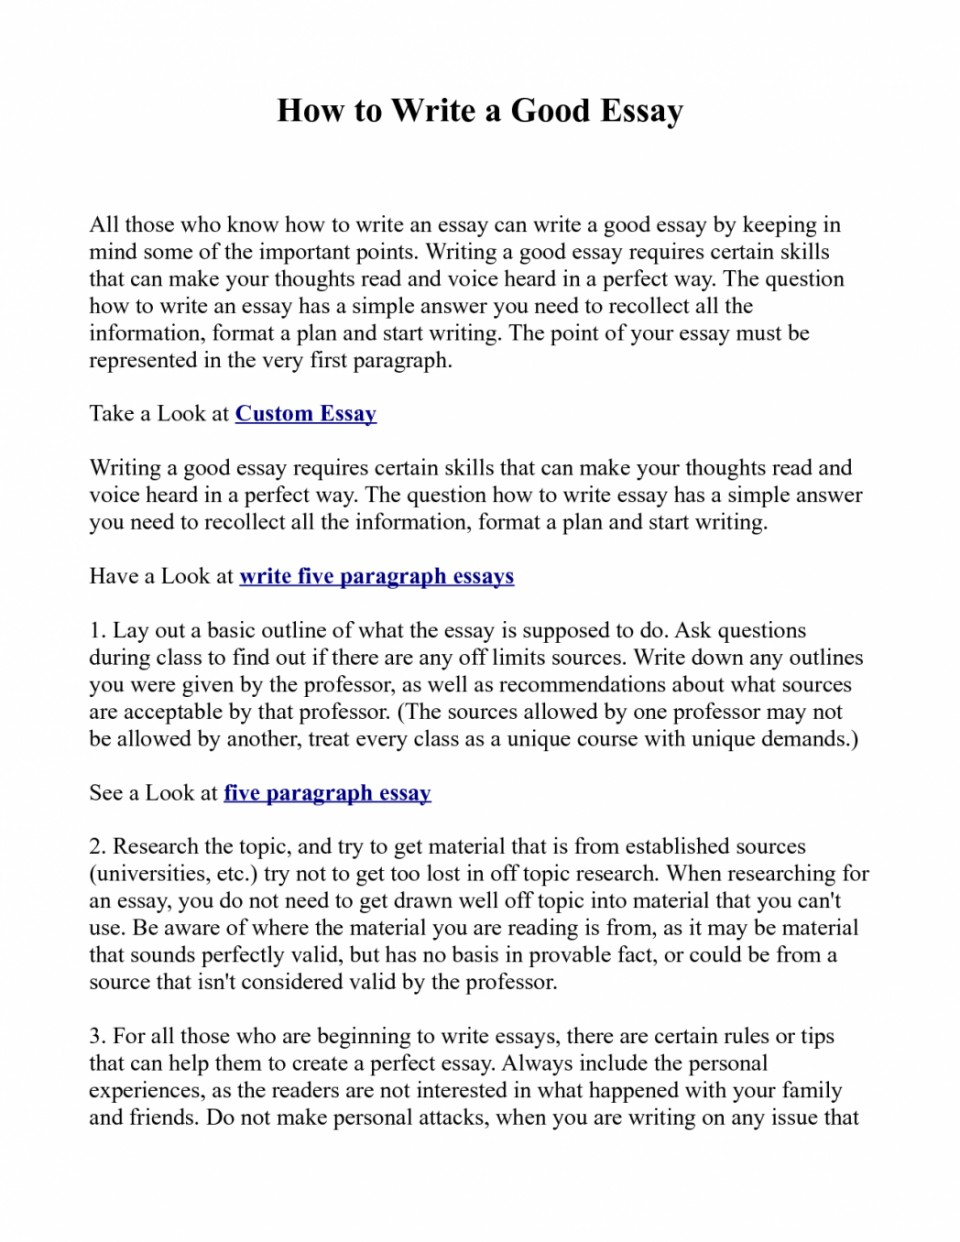 006 Essay Example How To Write Great Essays An Excellent The Perfect Easy Way Ex1id Best Awesome A Good For Scholarship Application Personal College Conclusion 960